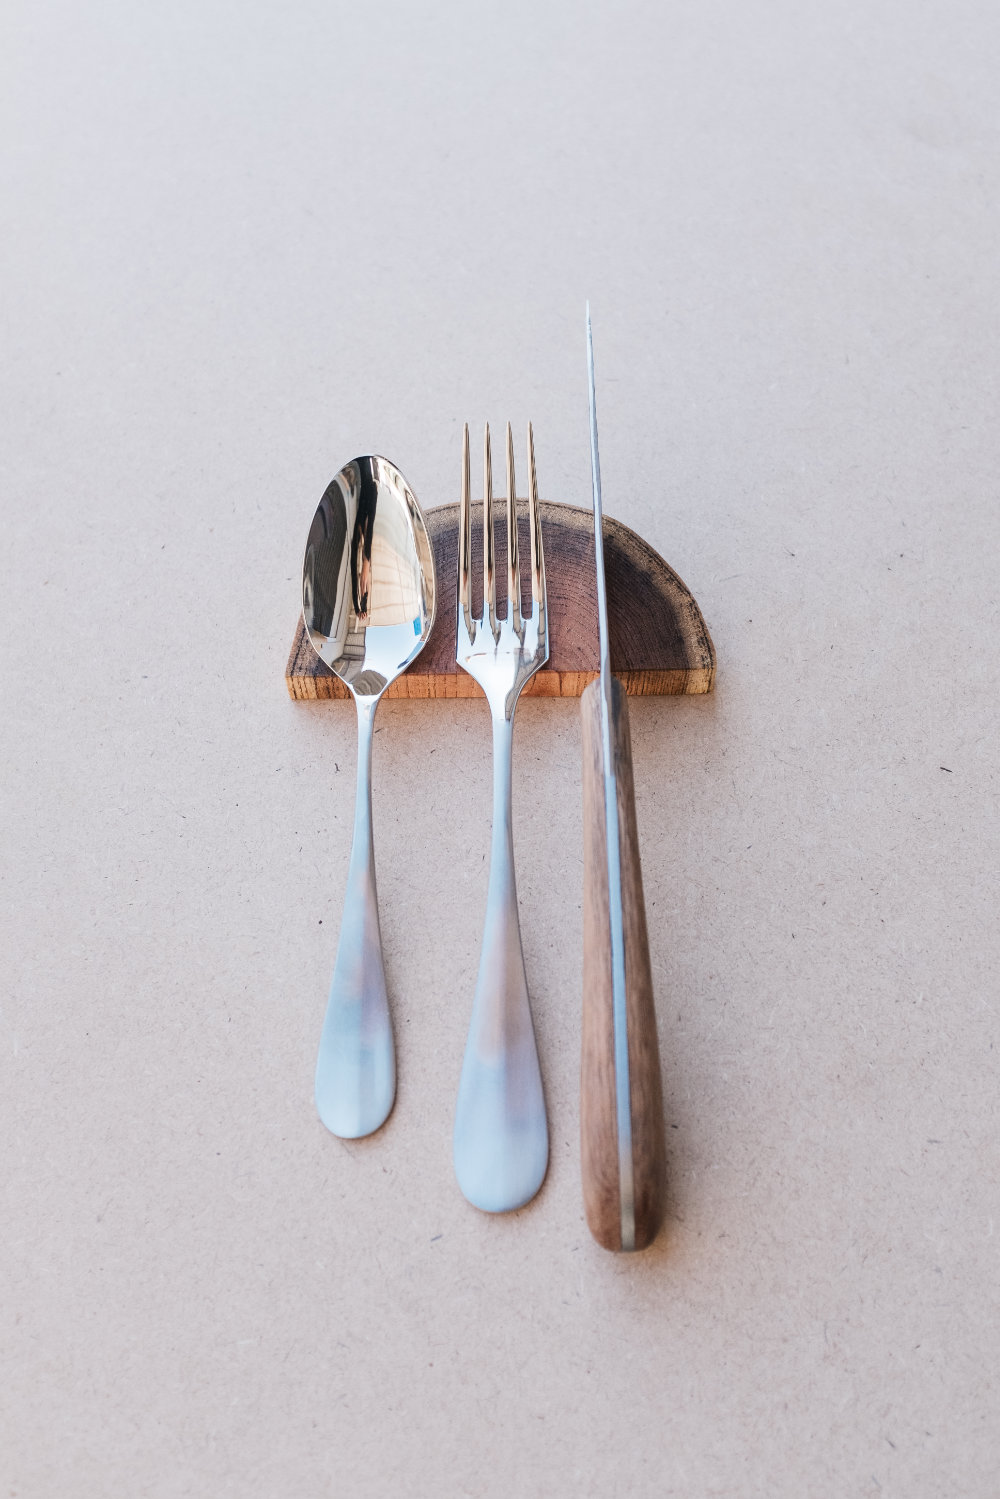 Cutlery rests with cutlery placed on